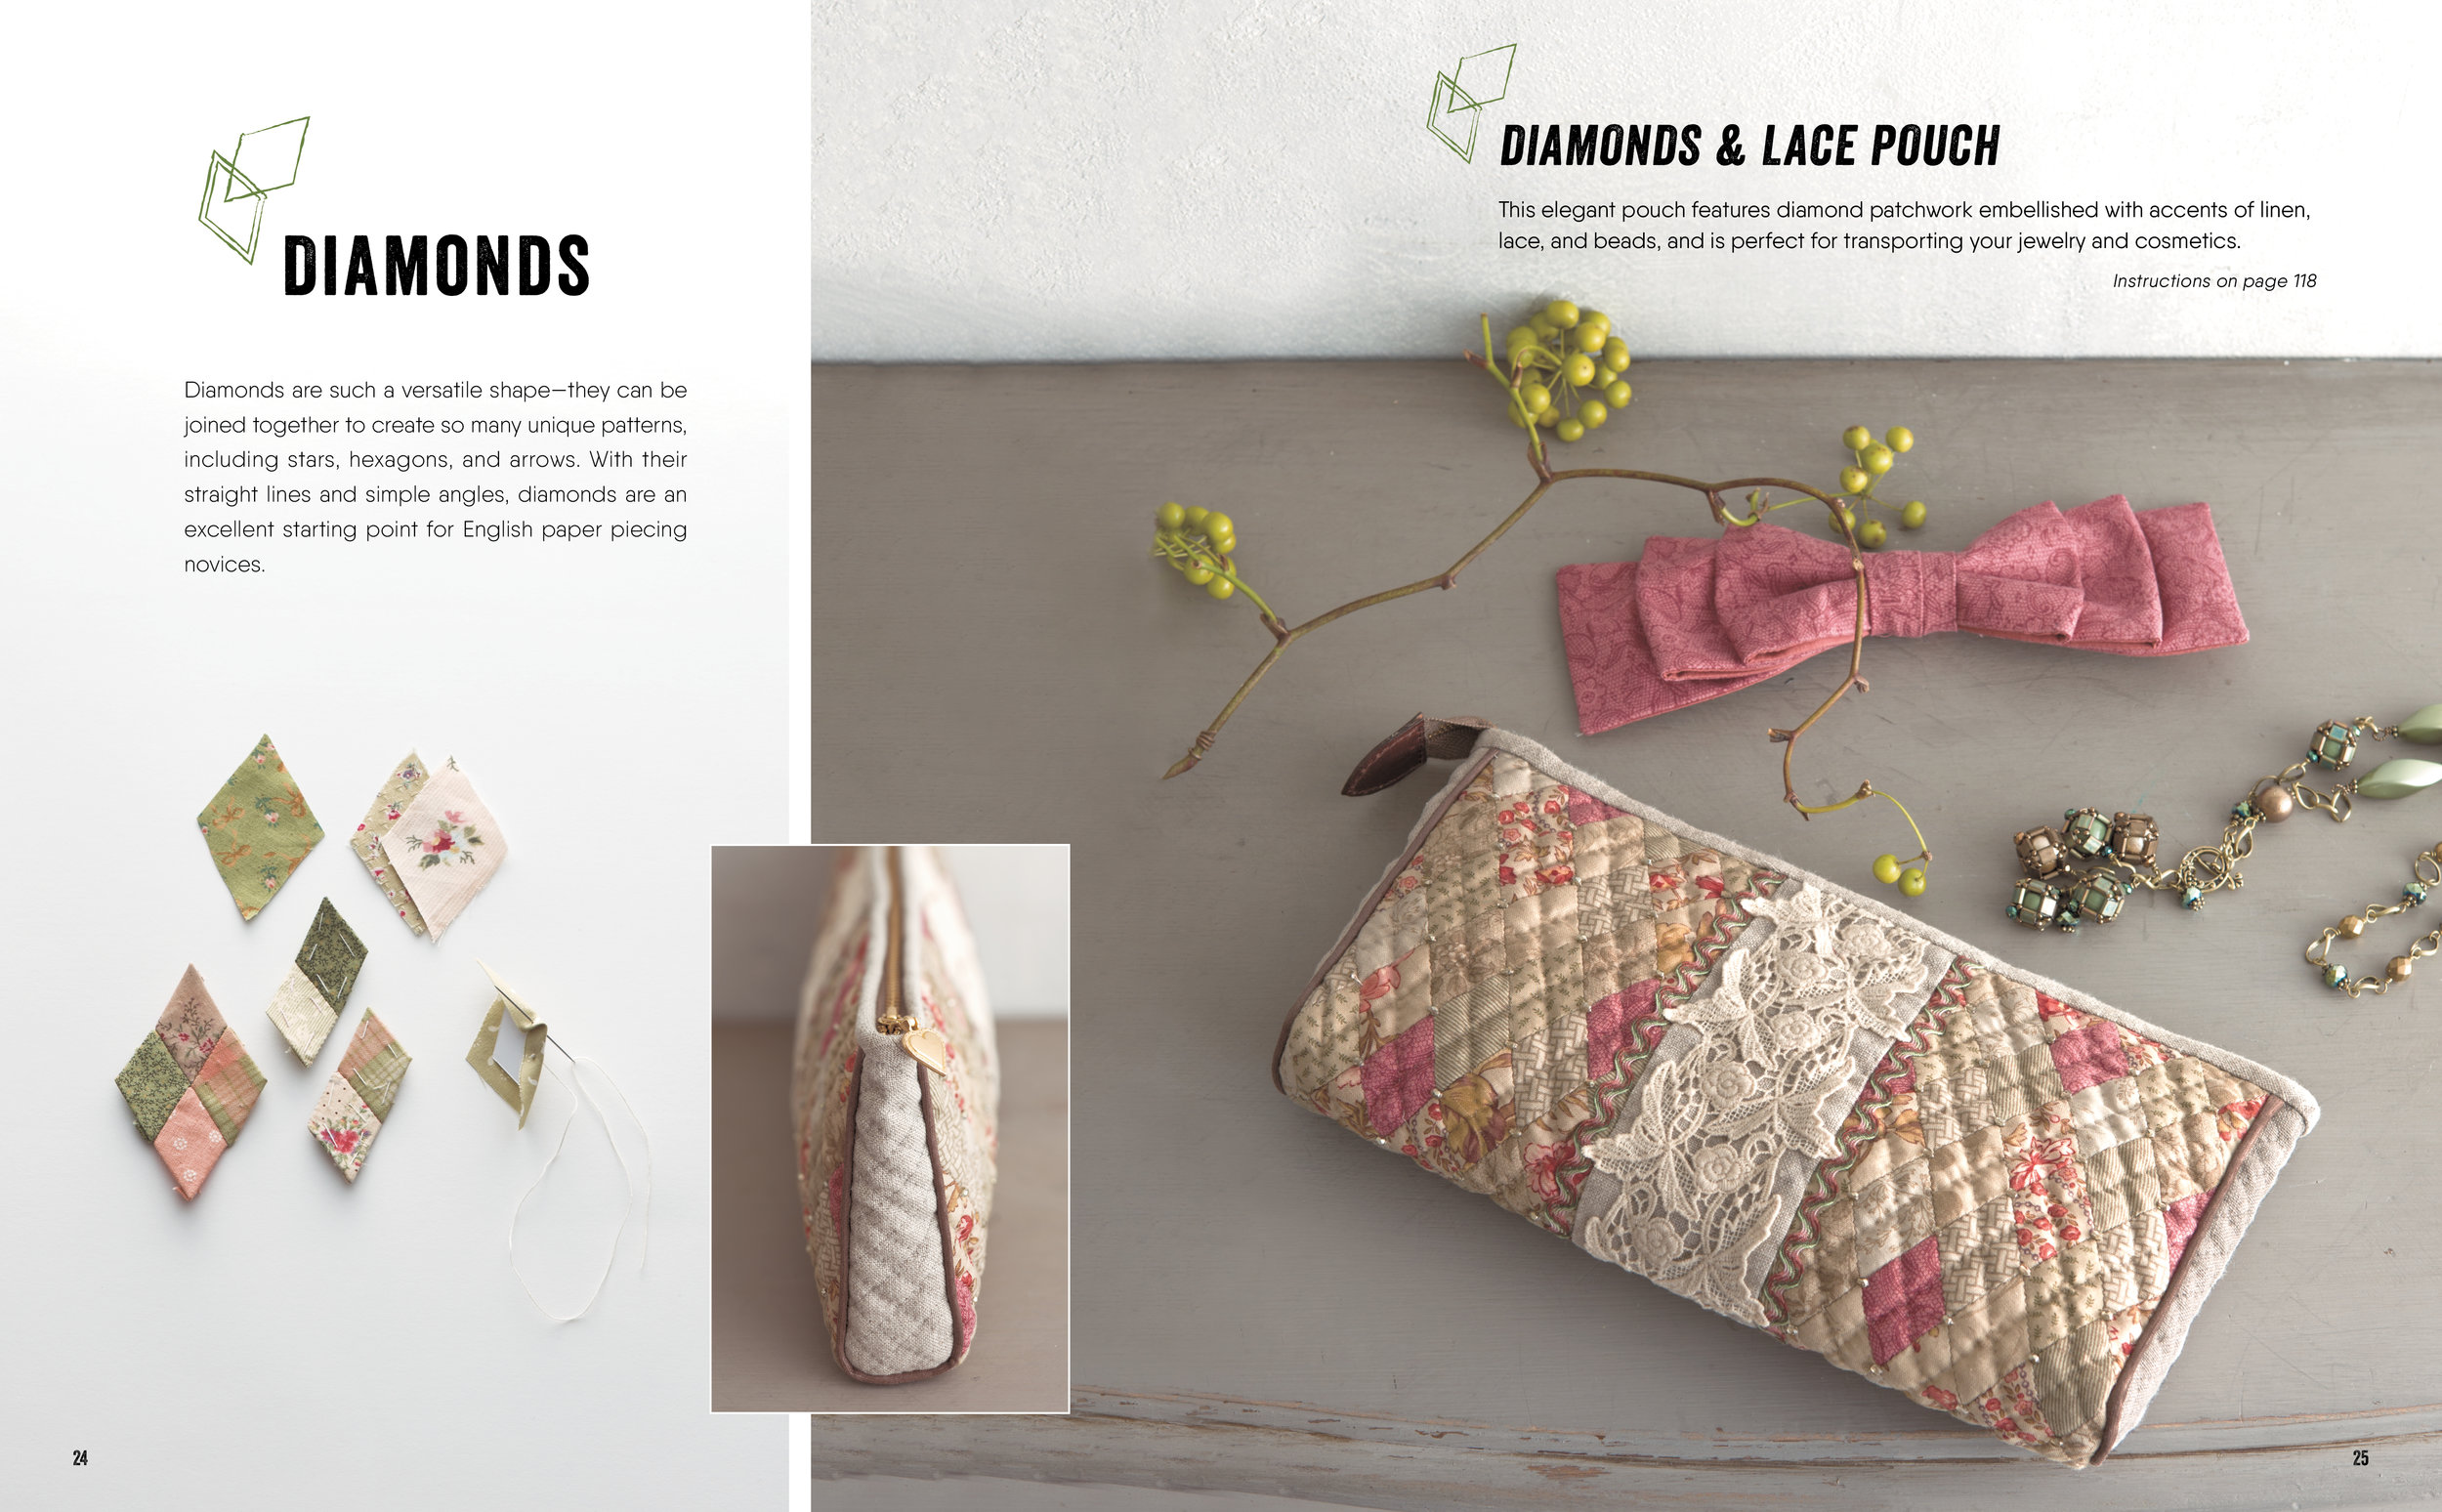 Quilted Throws, Bags, & Accessories 24.25.jpg